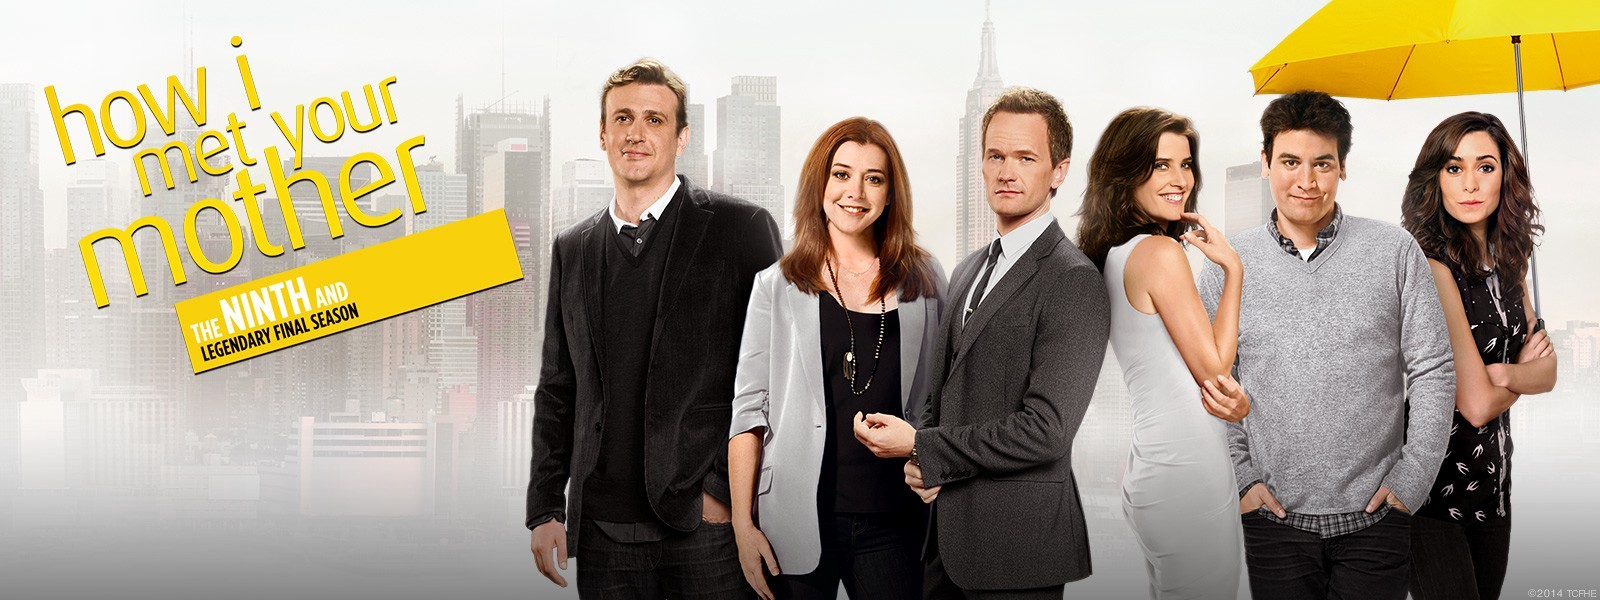 The Value From How I Met Your Mother Season 9 By Connor Bearcat Martin Bearcat Ponders Medium